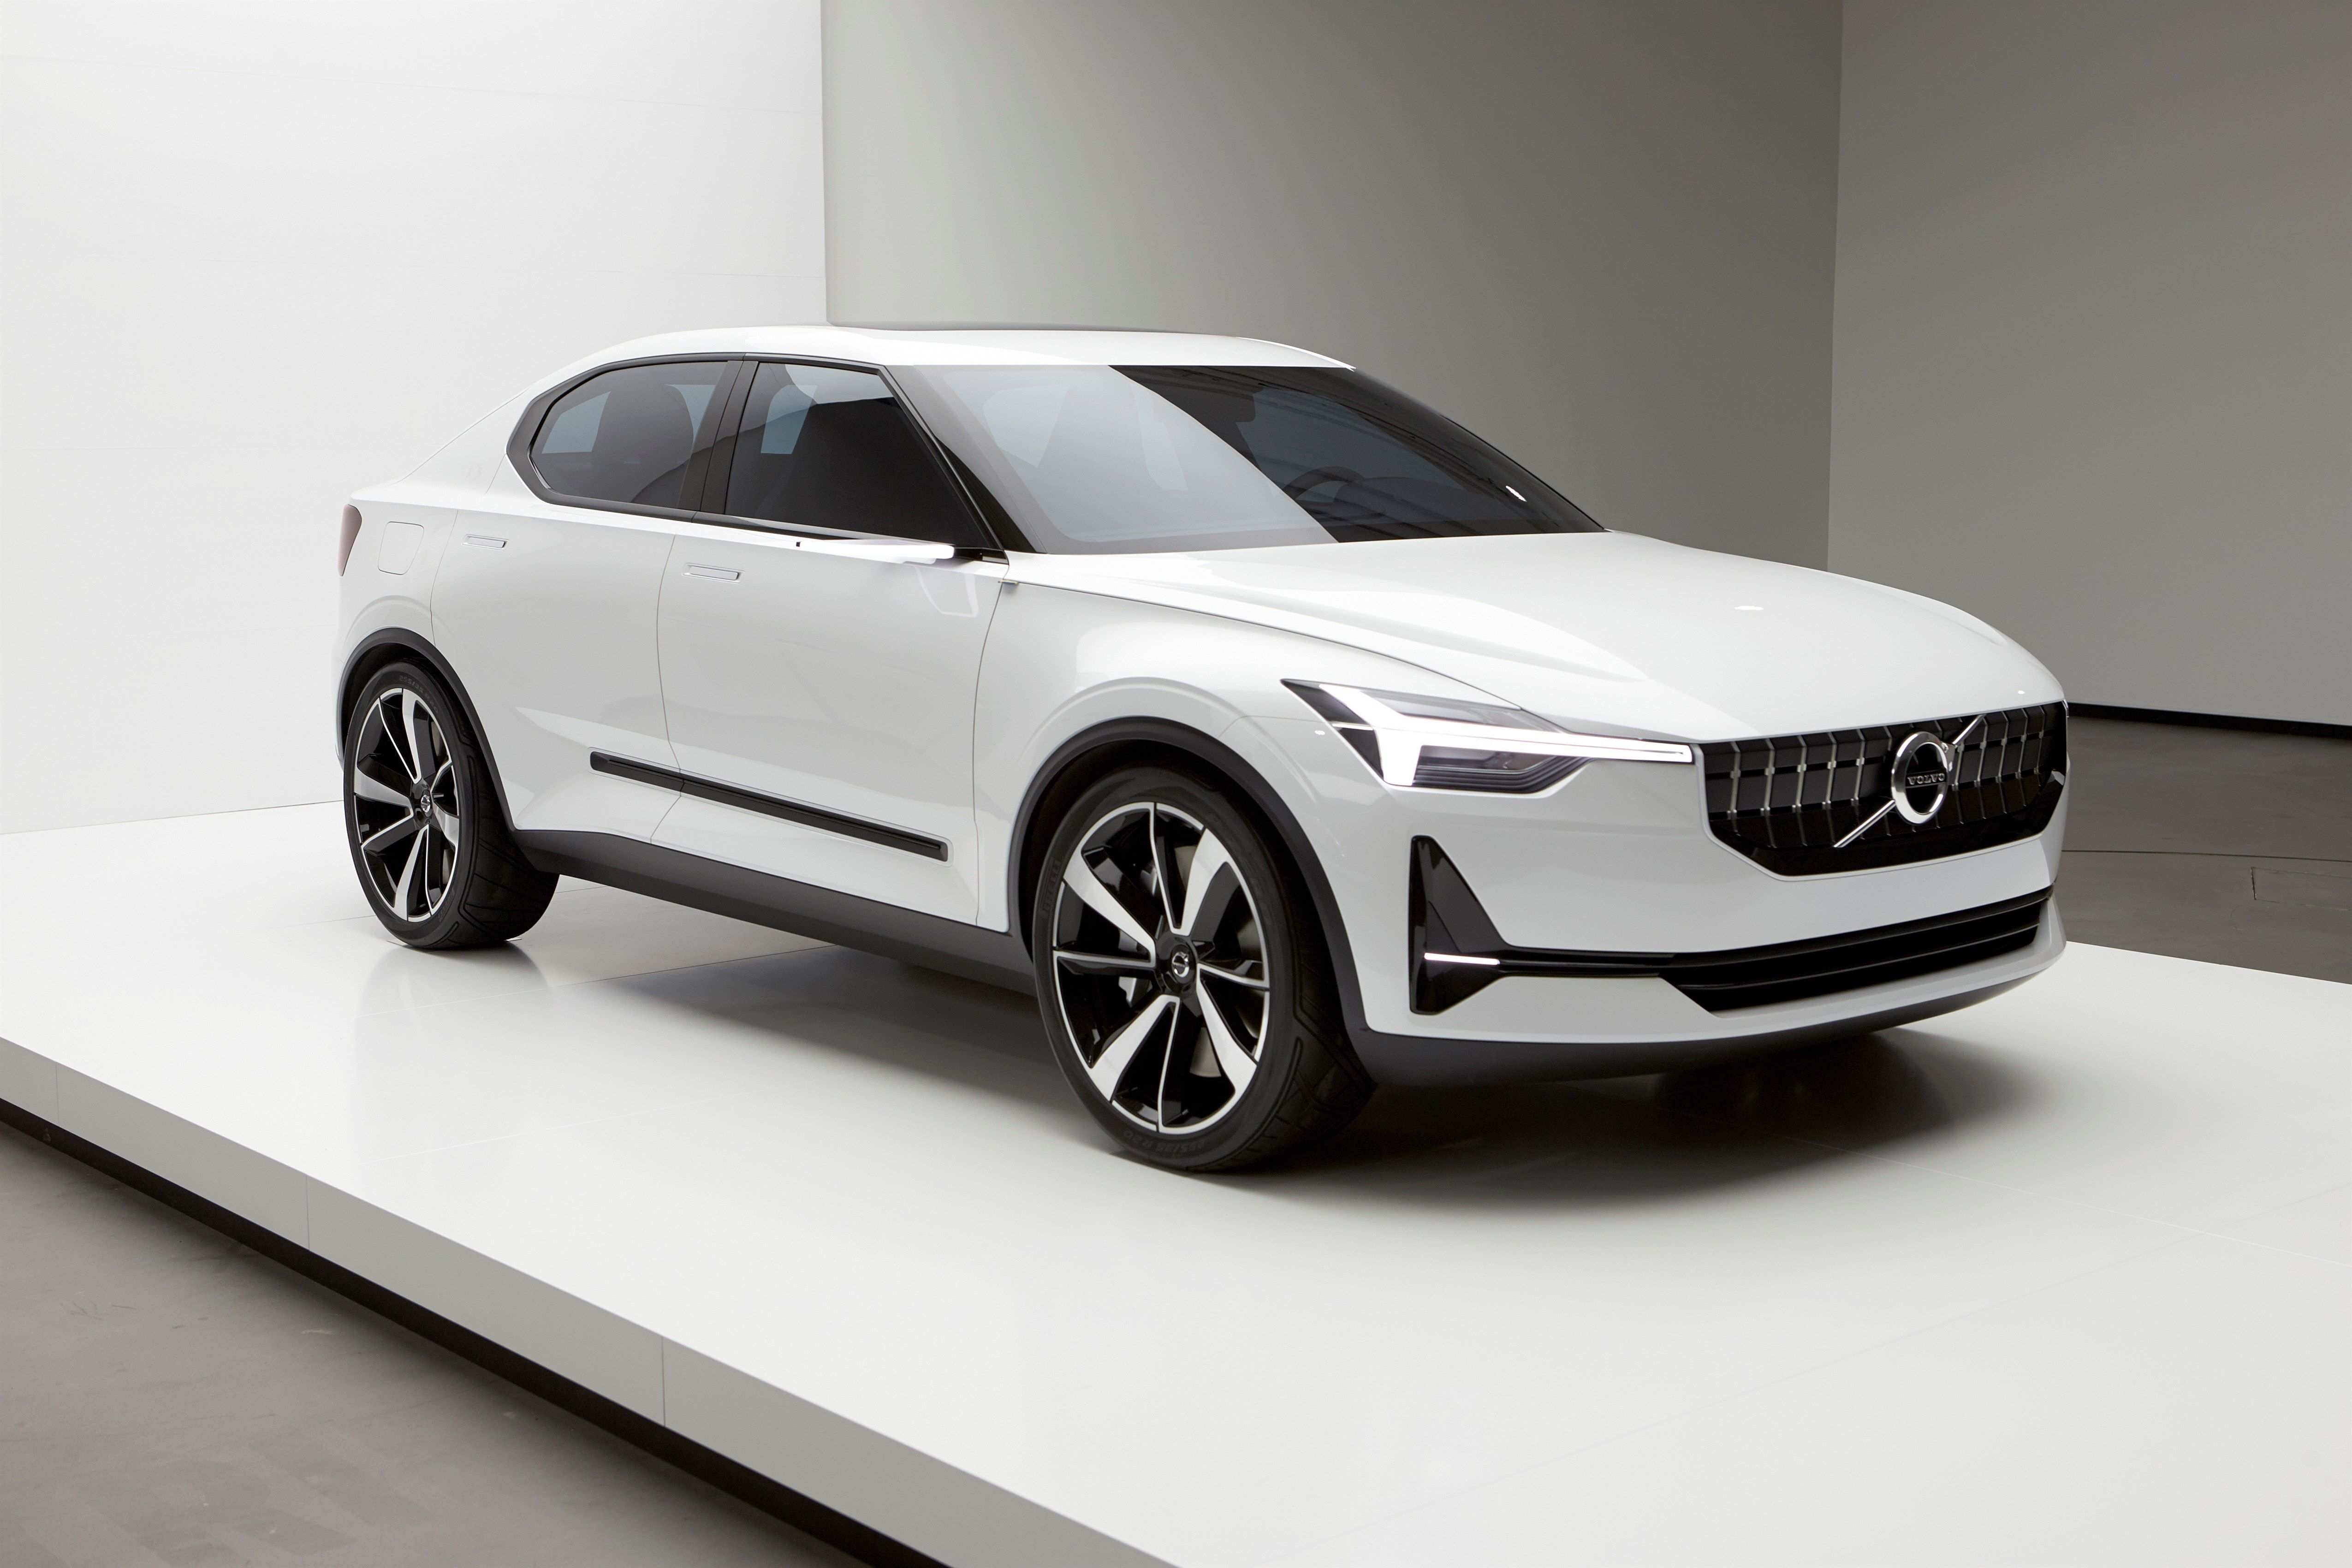 57 Gallery of New Volvo V40 2019 Release Date Concept Redesign And Review Picture with New Volvo V40 2019 Release Date Concept Redesign And Review